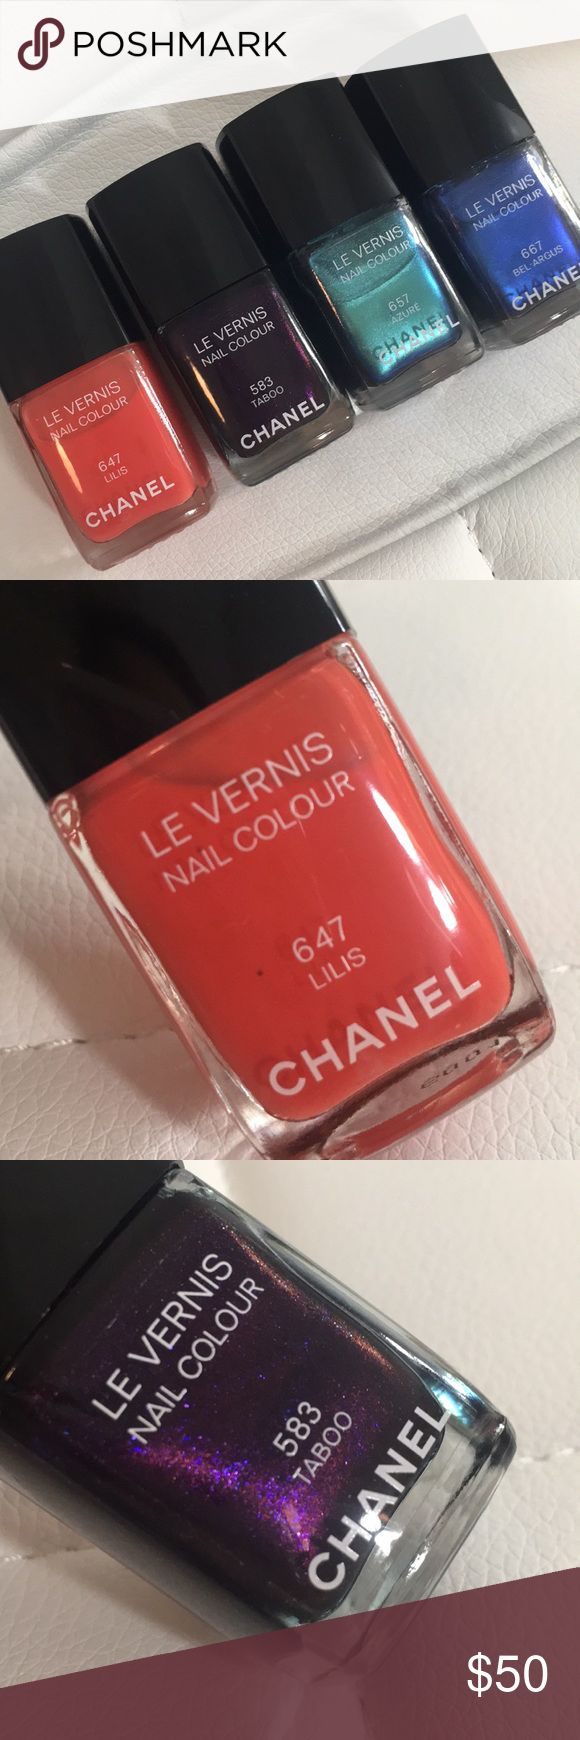 Set of 4 CHANEL Nail Polishes A set of 4 LE VERNIS NAIL COLOUR IN:  647 Lilis, 583 Taboo, 656 Azure, 667 Bel-Argus Each polish has been used once or twice maximum!  Like new condition. Great buy!!! CHANEL Makeup Brushes & Tools